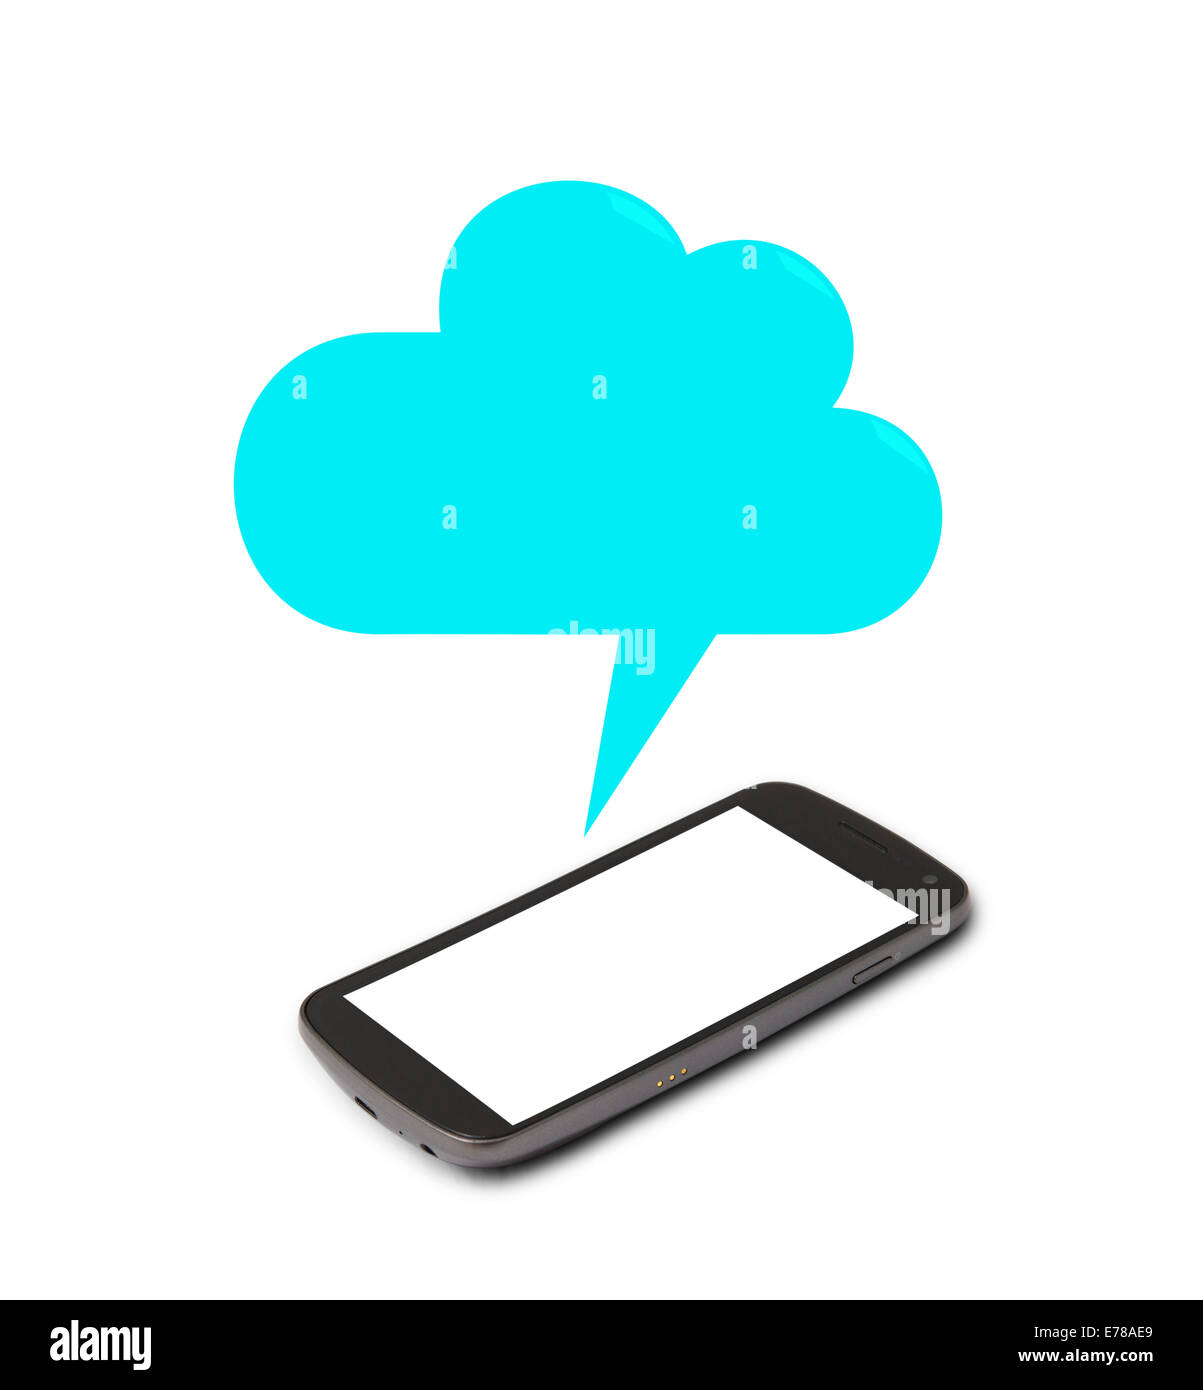 Smart phone with speech bubble - Stock Image